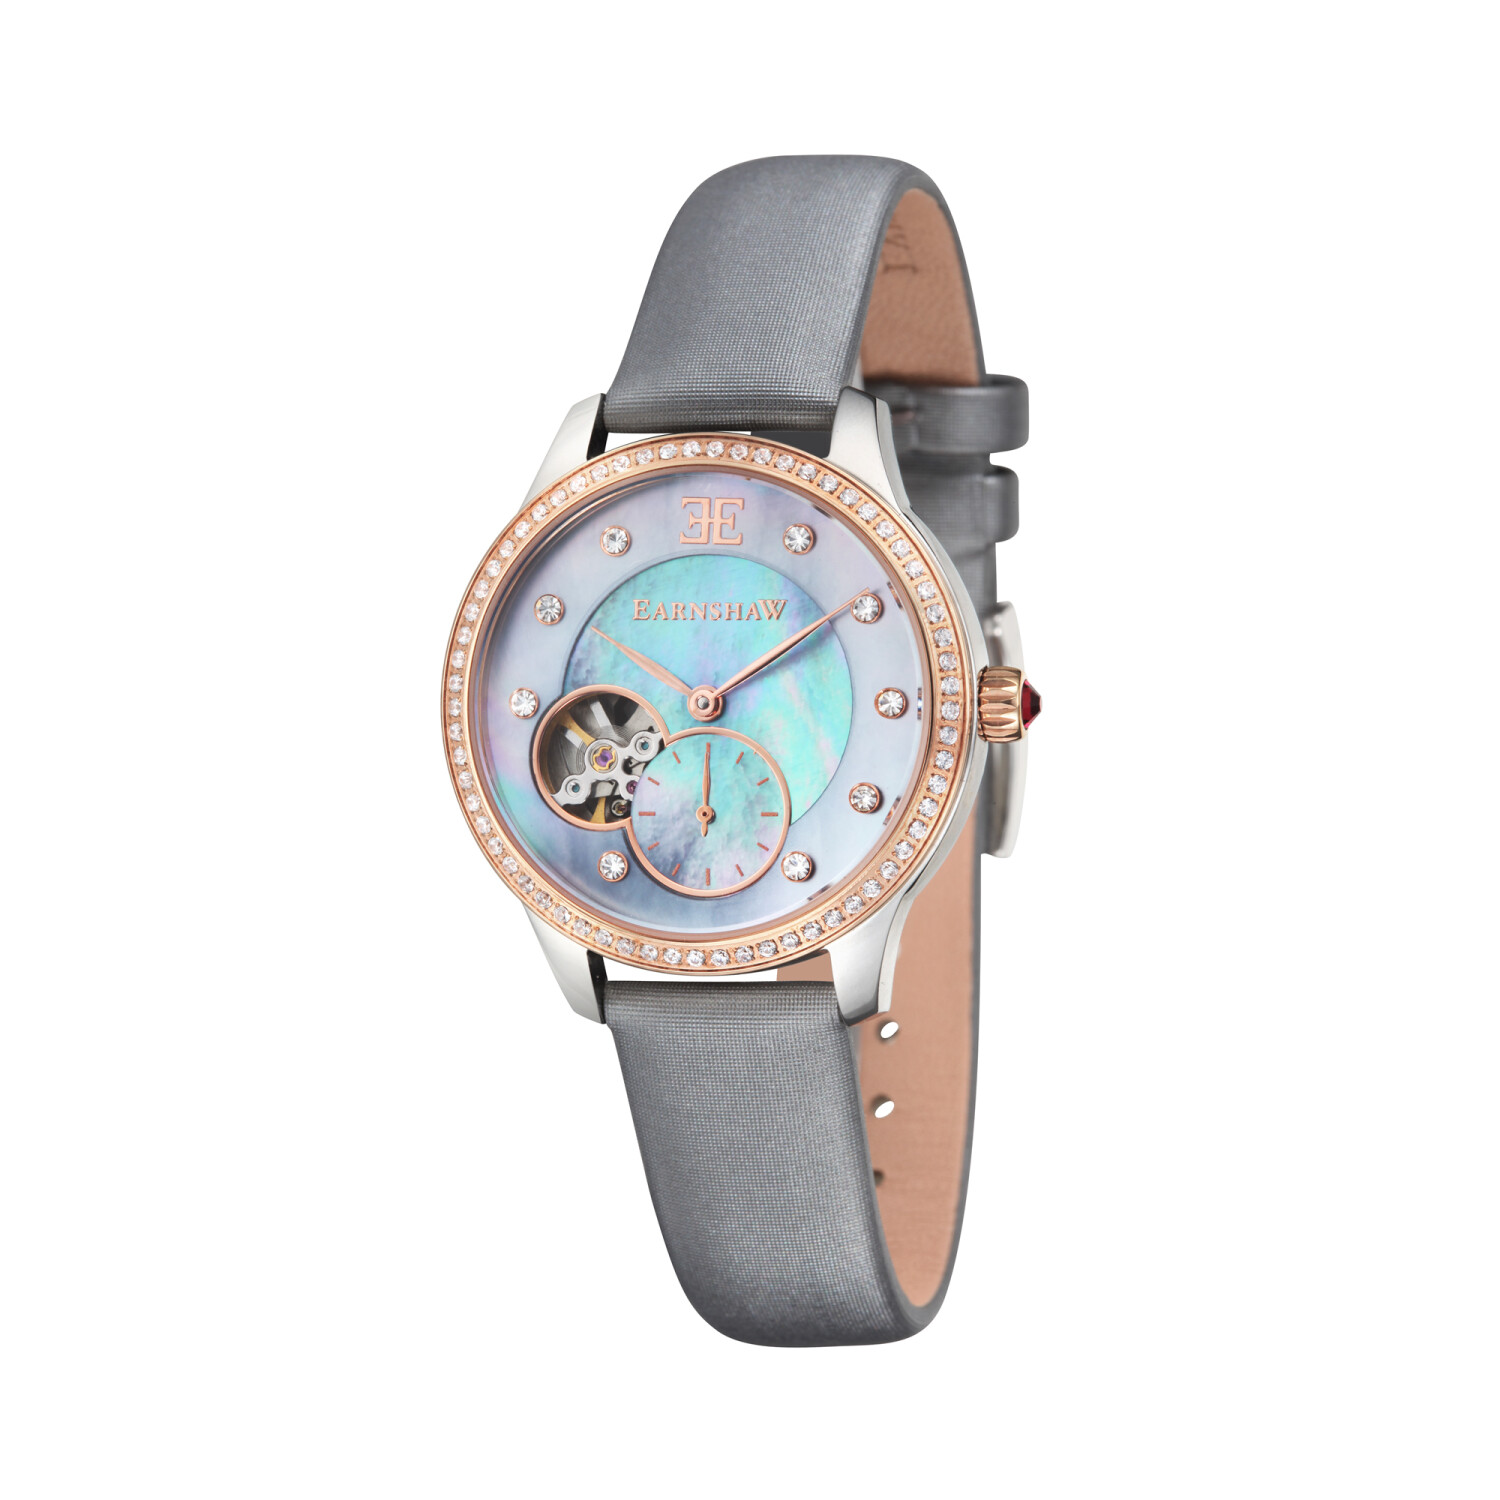 Thomas Earnshaw Women's Lady Australis ES-8029-05 Silver Leather Hand Wind Fashion Watch